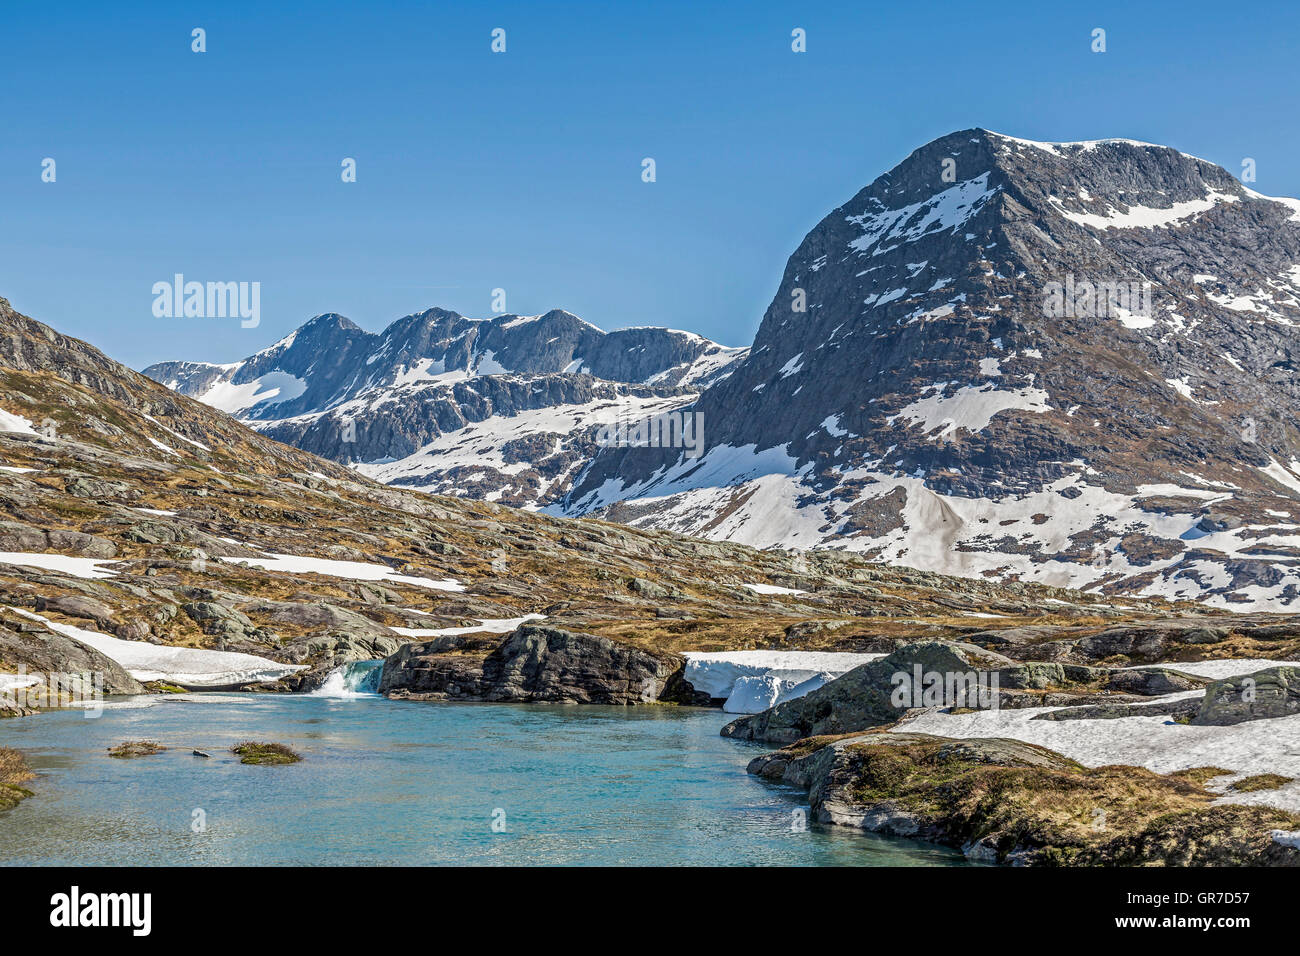 Lake At The Pass Of Trollstigen In The Romsdal Alps - Stock Image